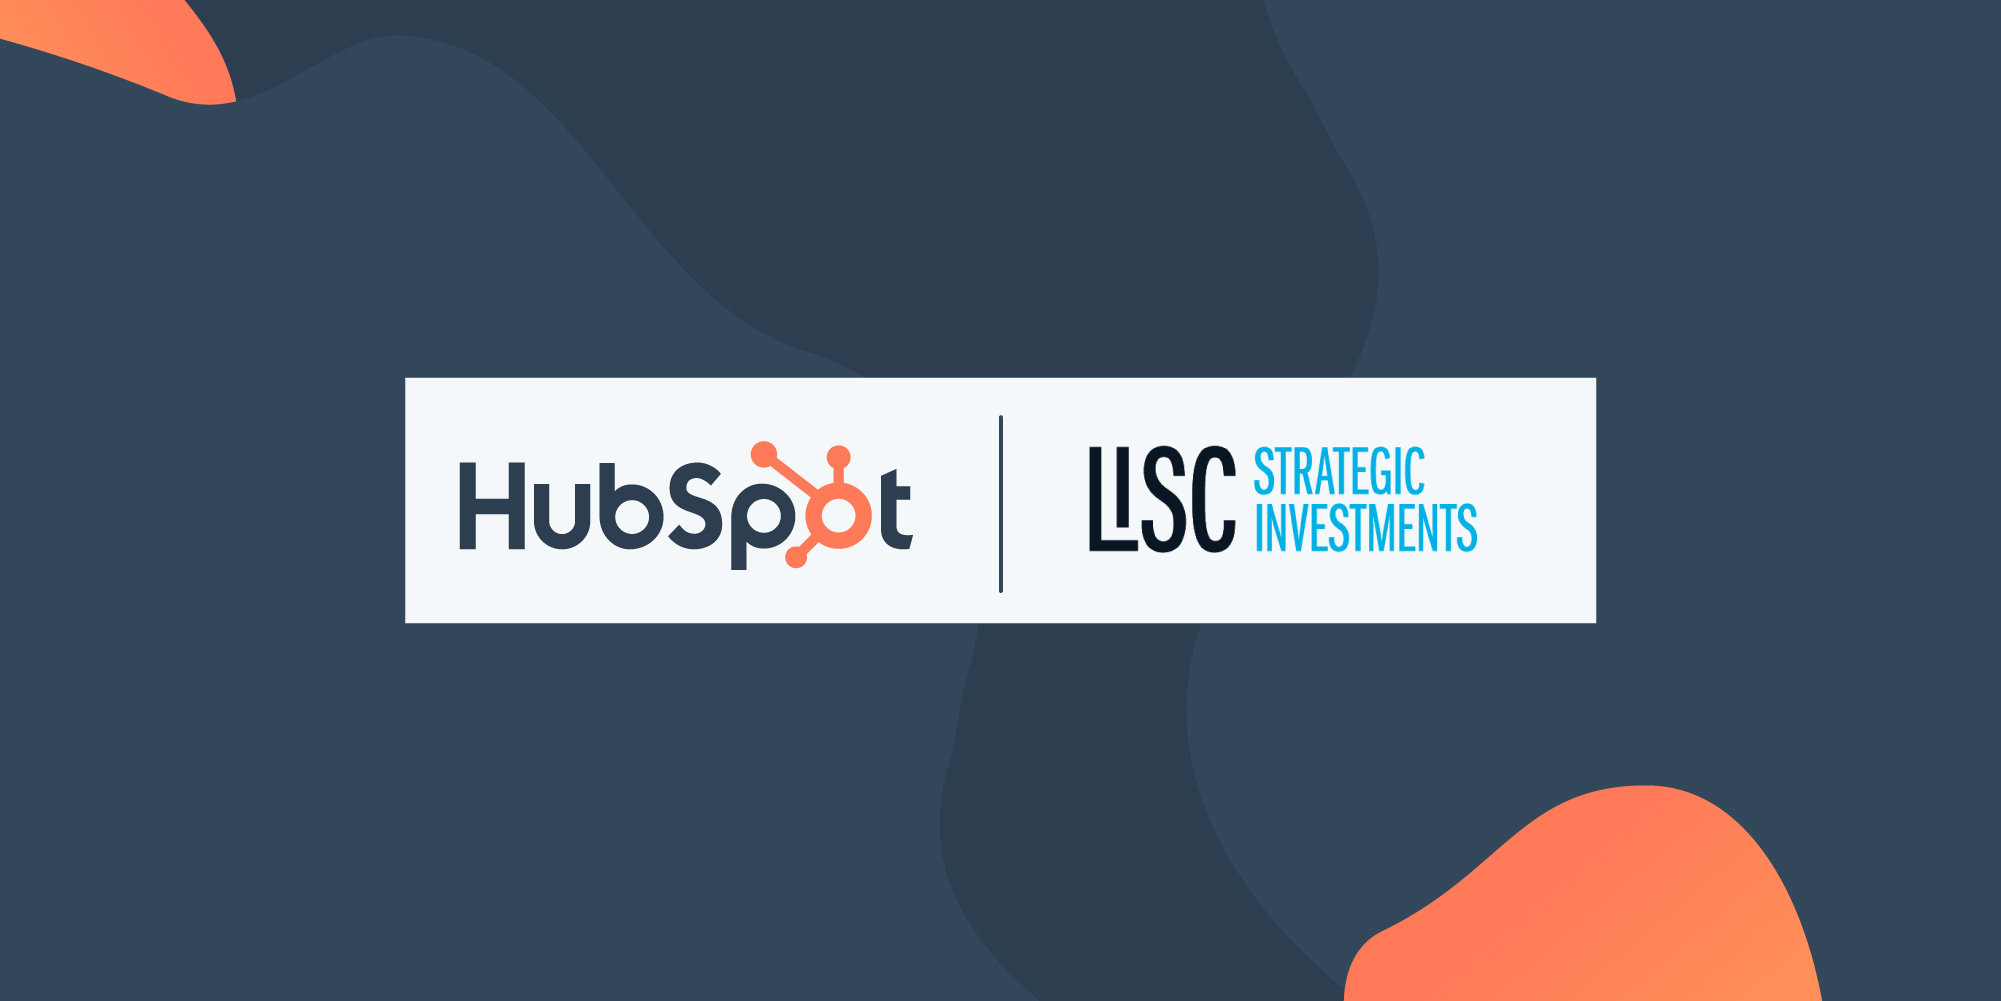 HubSpot Announces $20 Million Commitment to Social Impact Investing